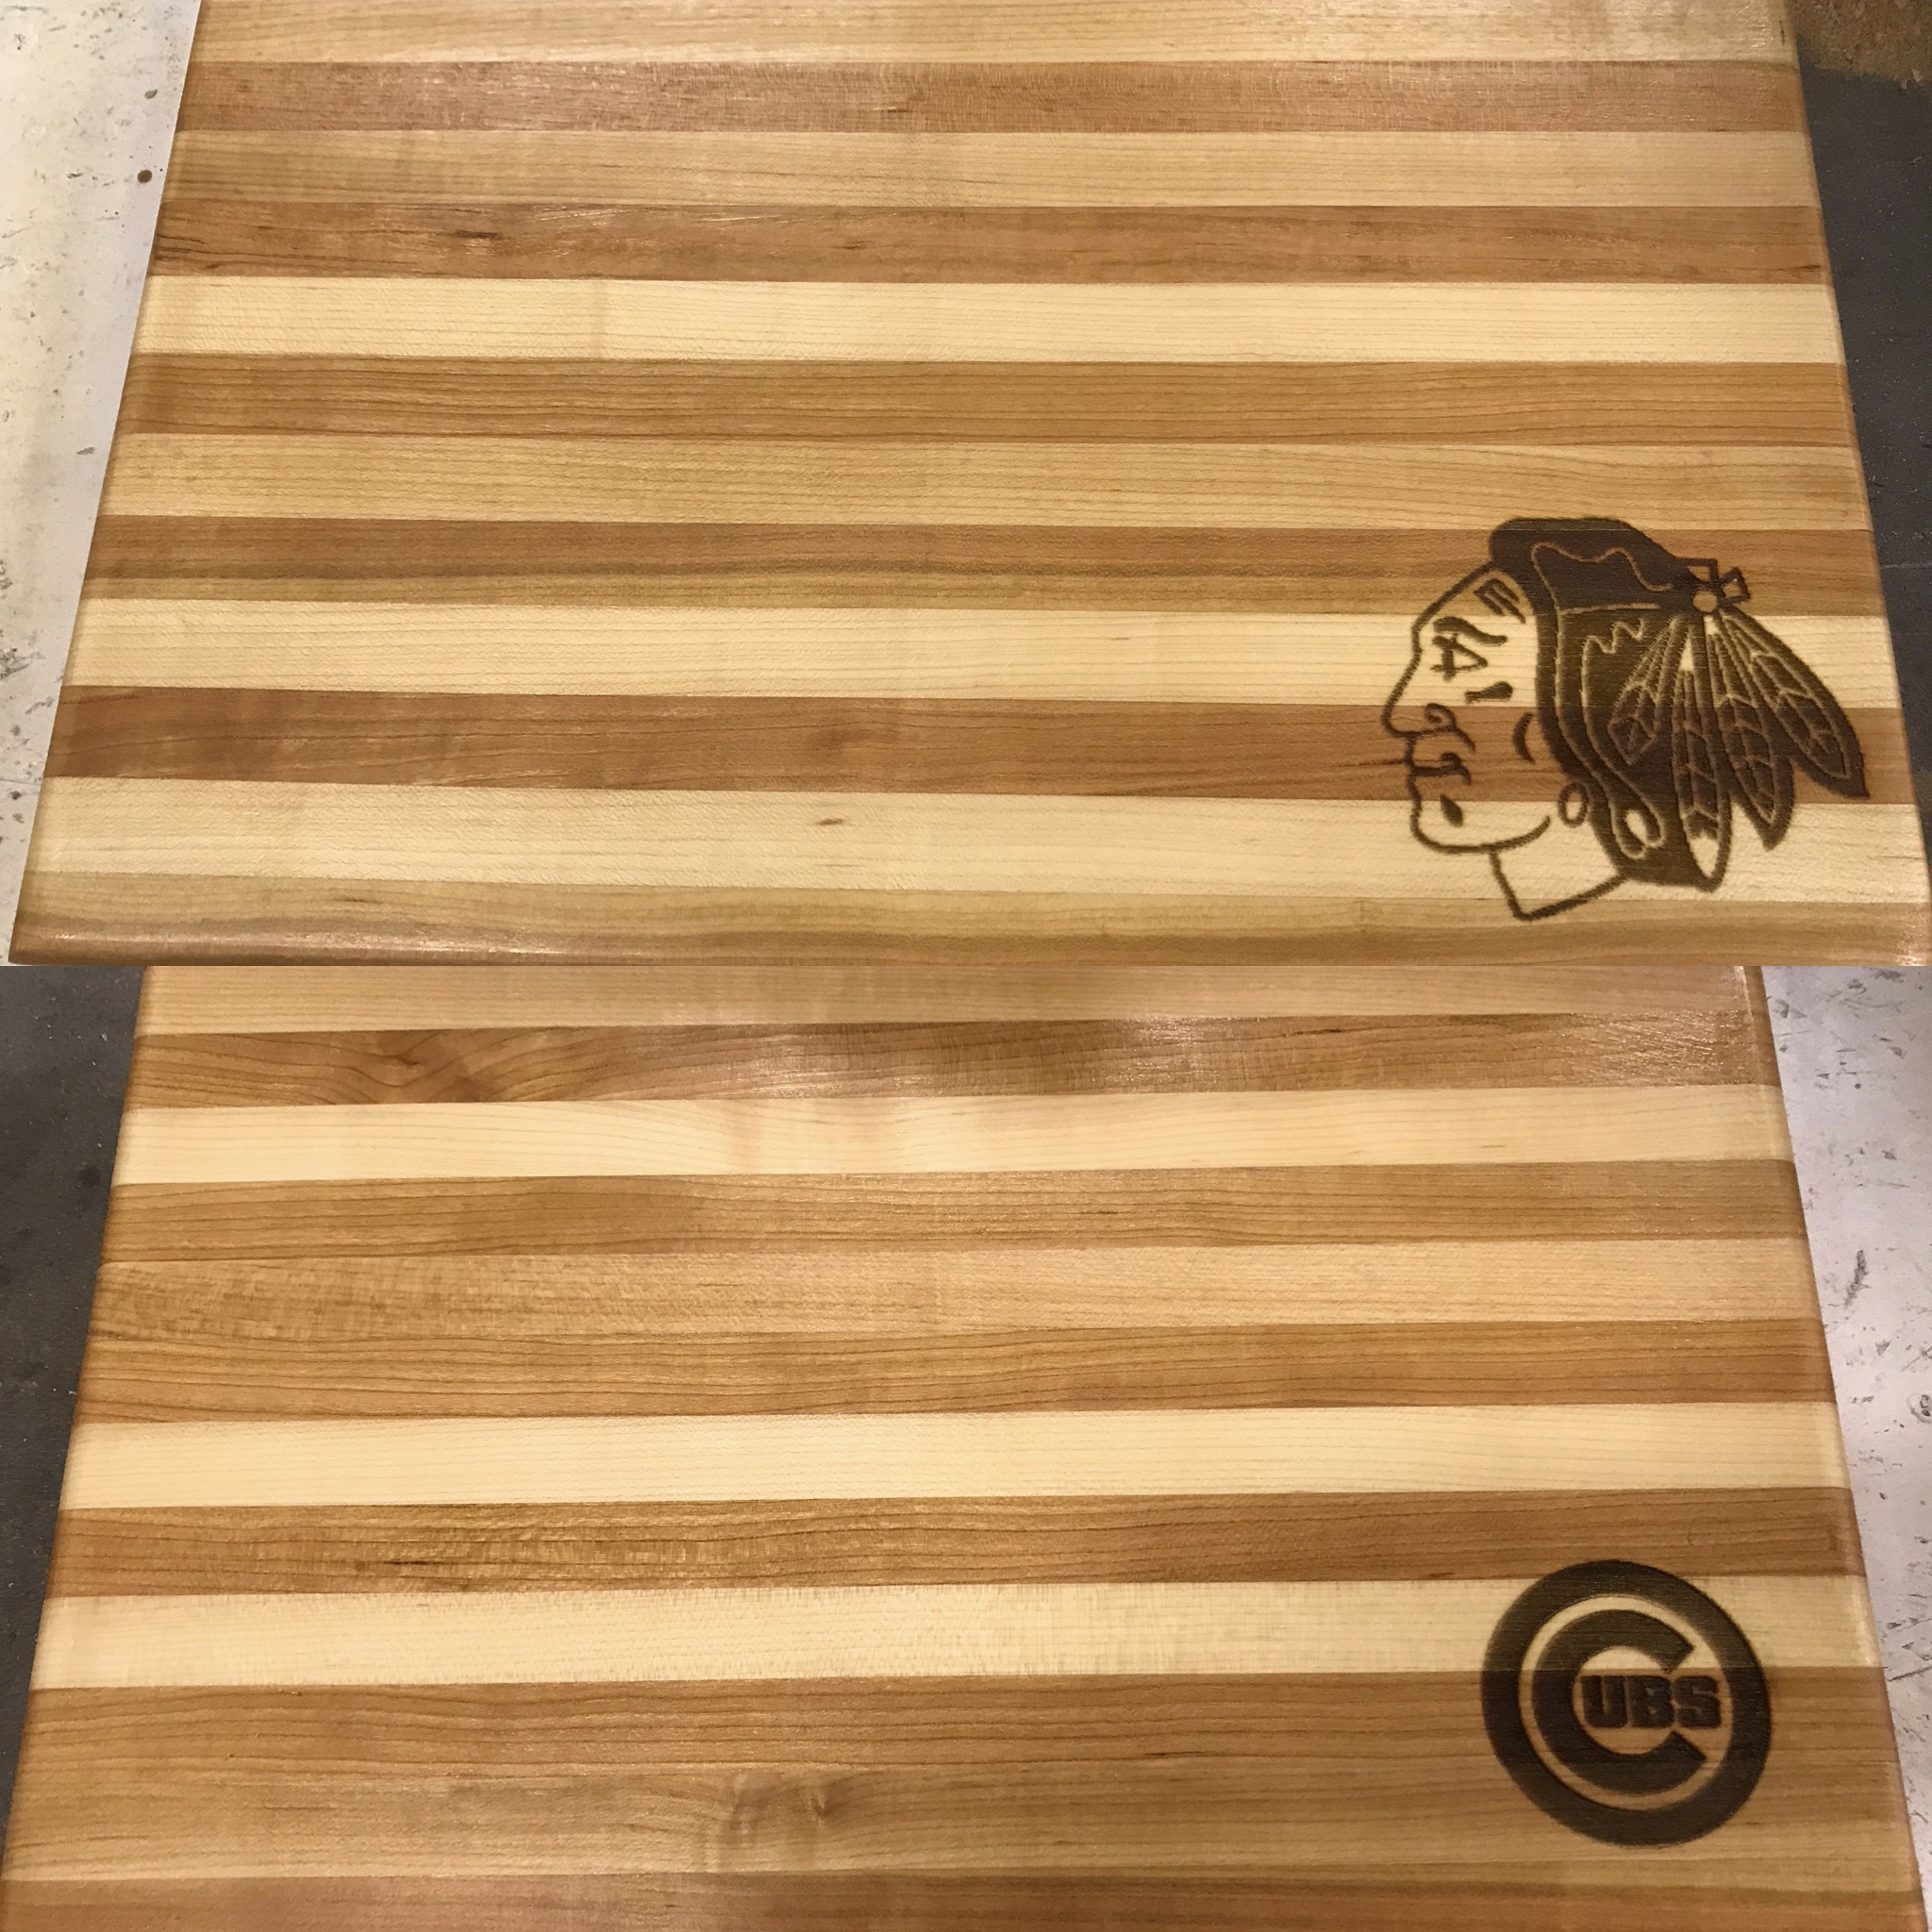 Laser Etched Cutting Boards. Many Logos, Monograms, etc. are available to your wood project